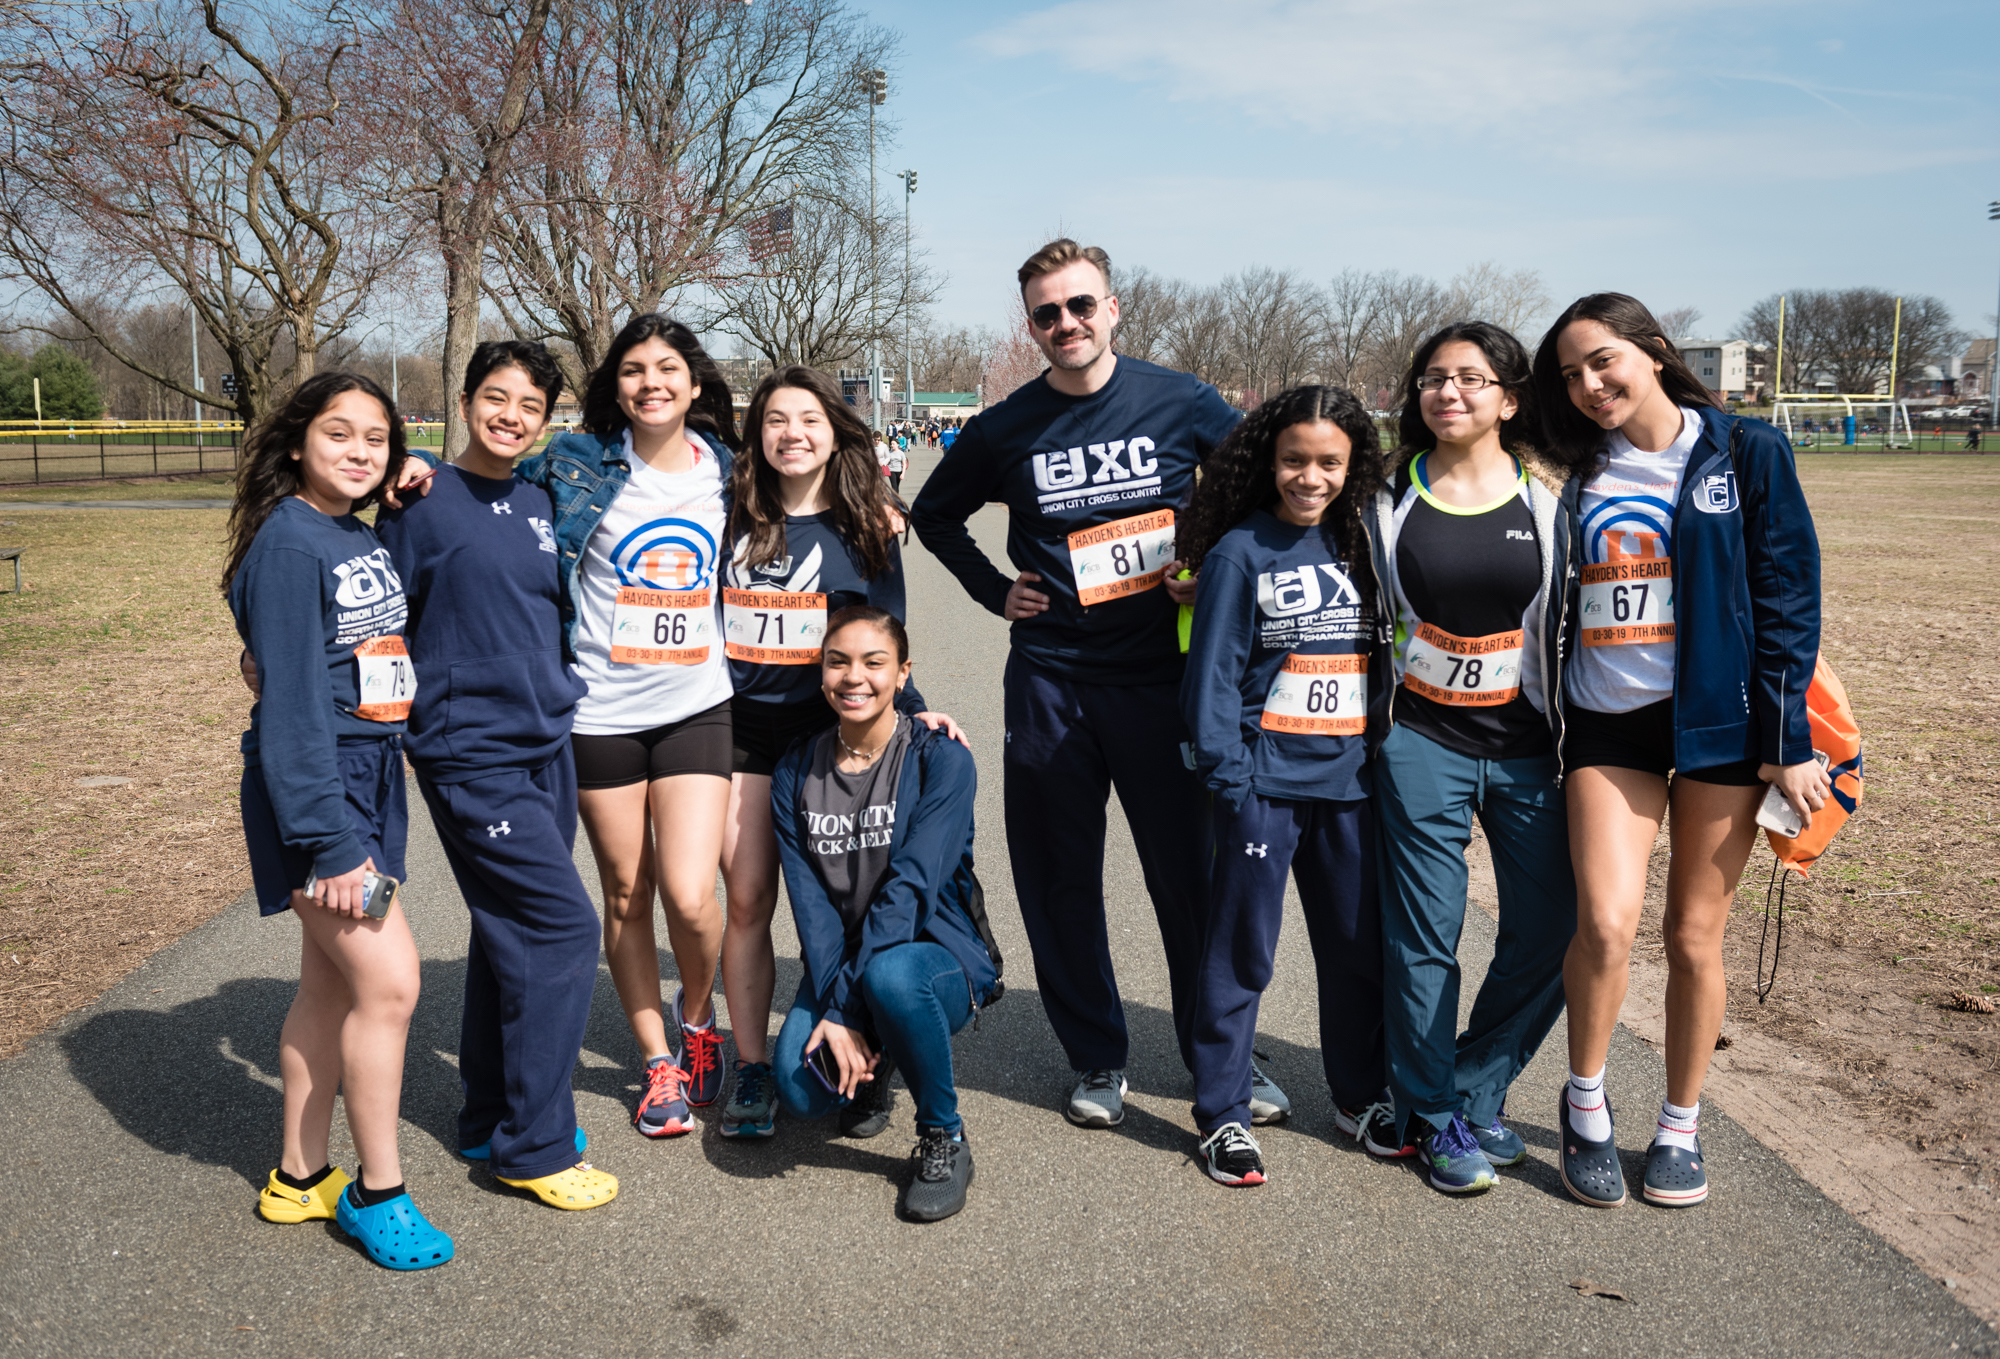 2019-03-30 Haydens Heart 5k - Riverside County Park - North Arlington NJ-8.jpg